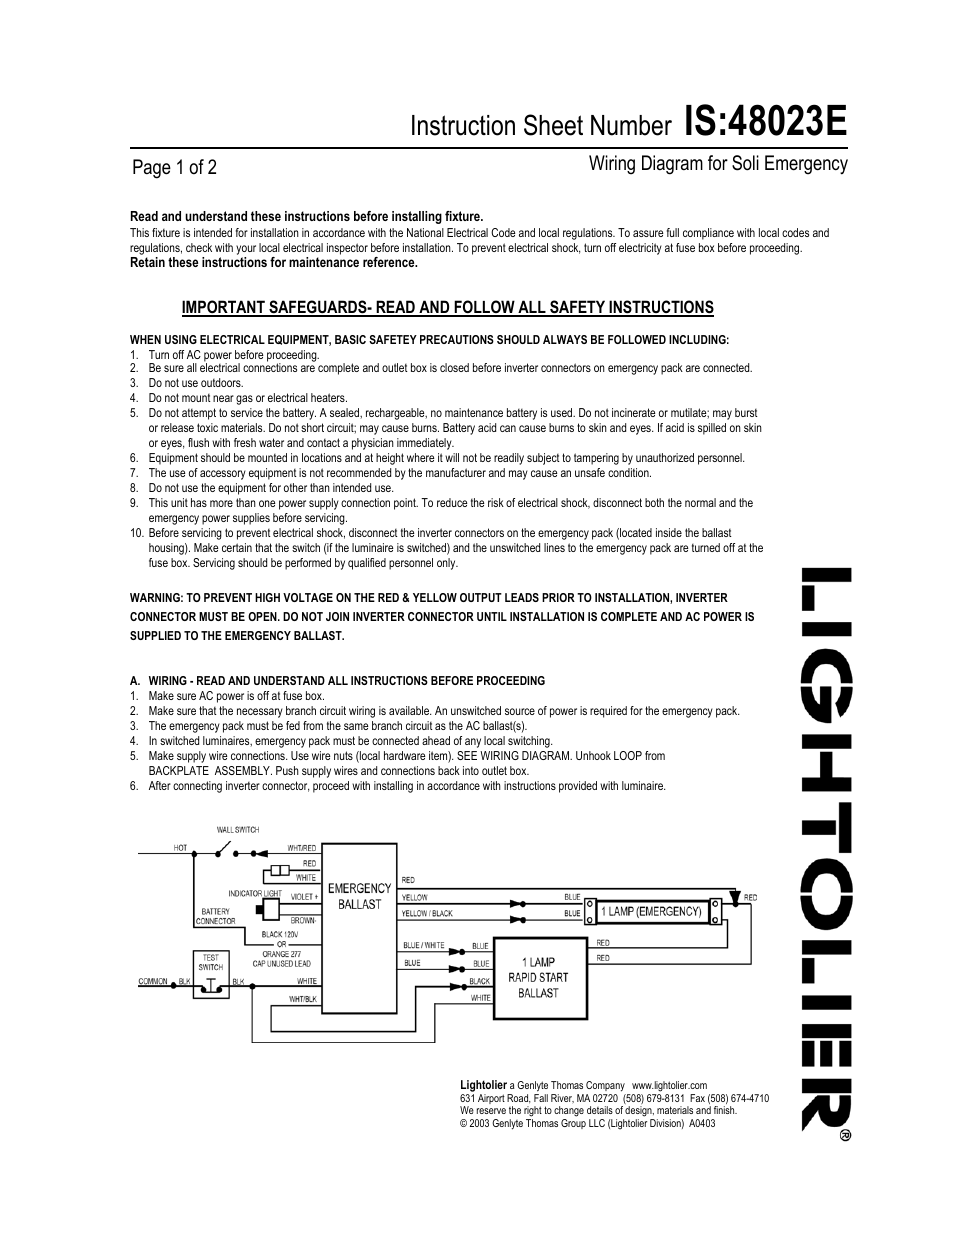 medium resolution of lightolier wiring diagram for soli emergency 48023e user manual 2 pages